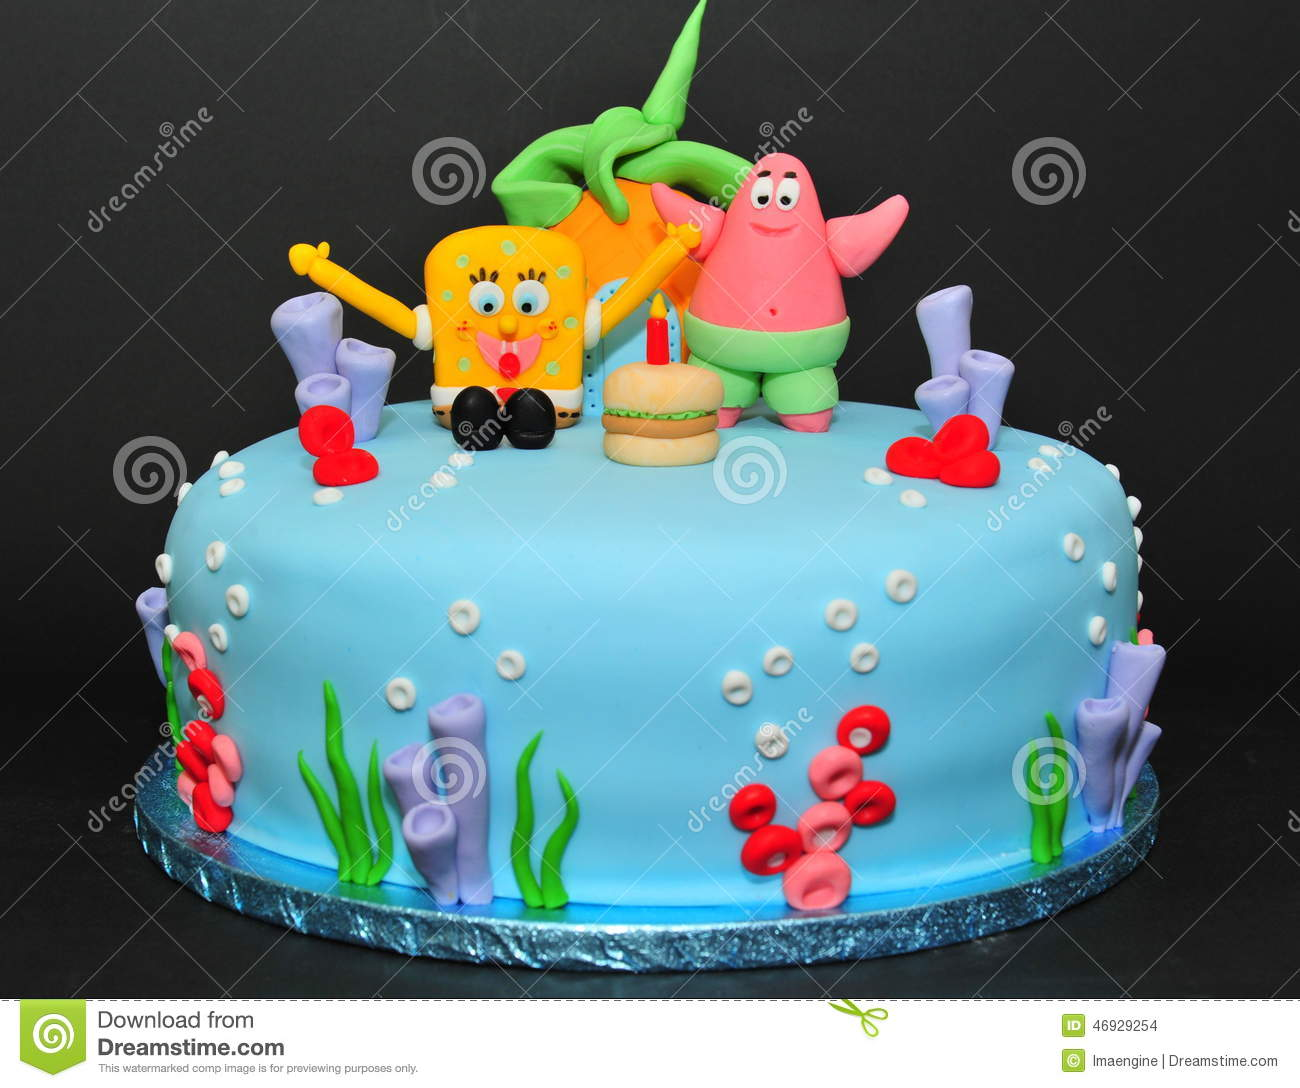 Birthday Cake Images With Cartoon Character : Sponge Bob Cake Editorial Stock Image - Image: 46929254